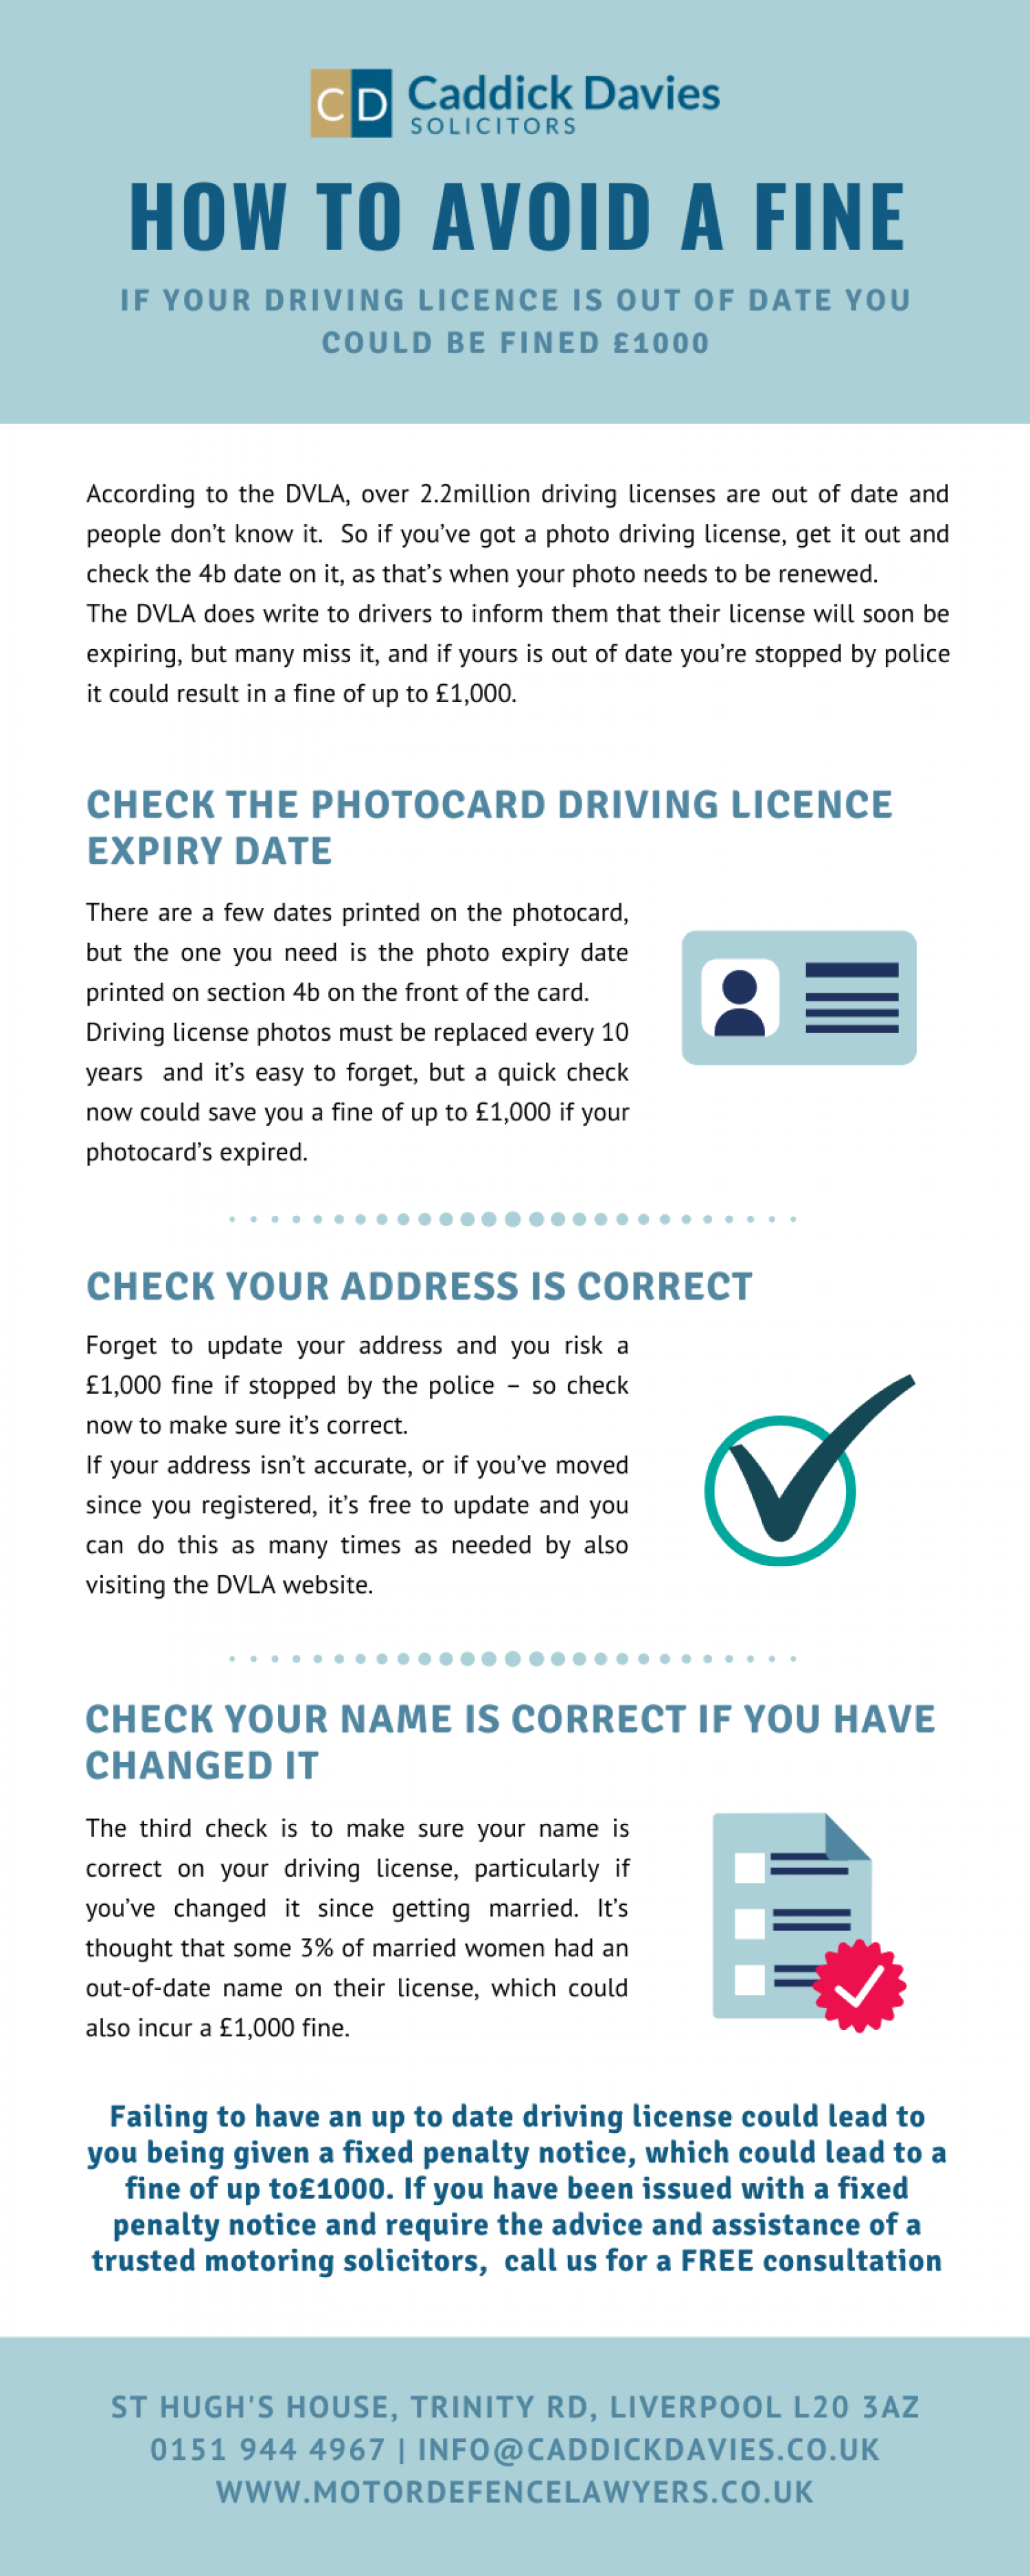 If your driving licence is out of date you could be fined £1000 - Caddick Davies Infographic